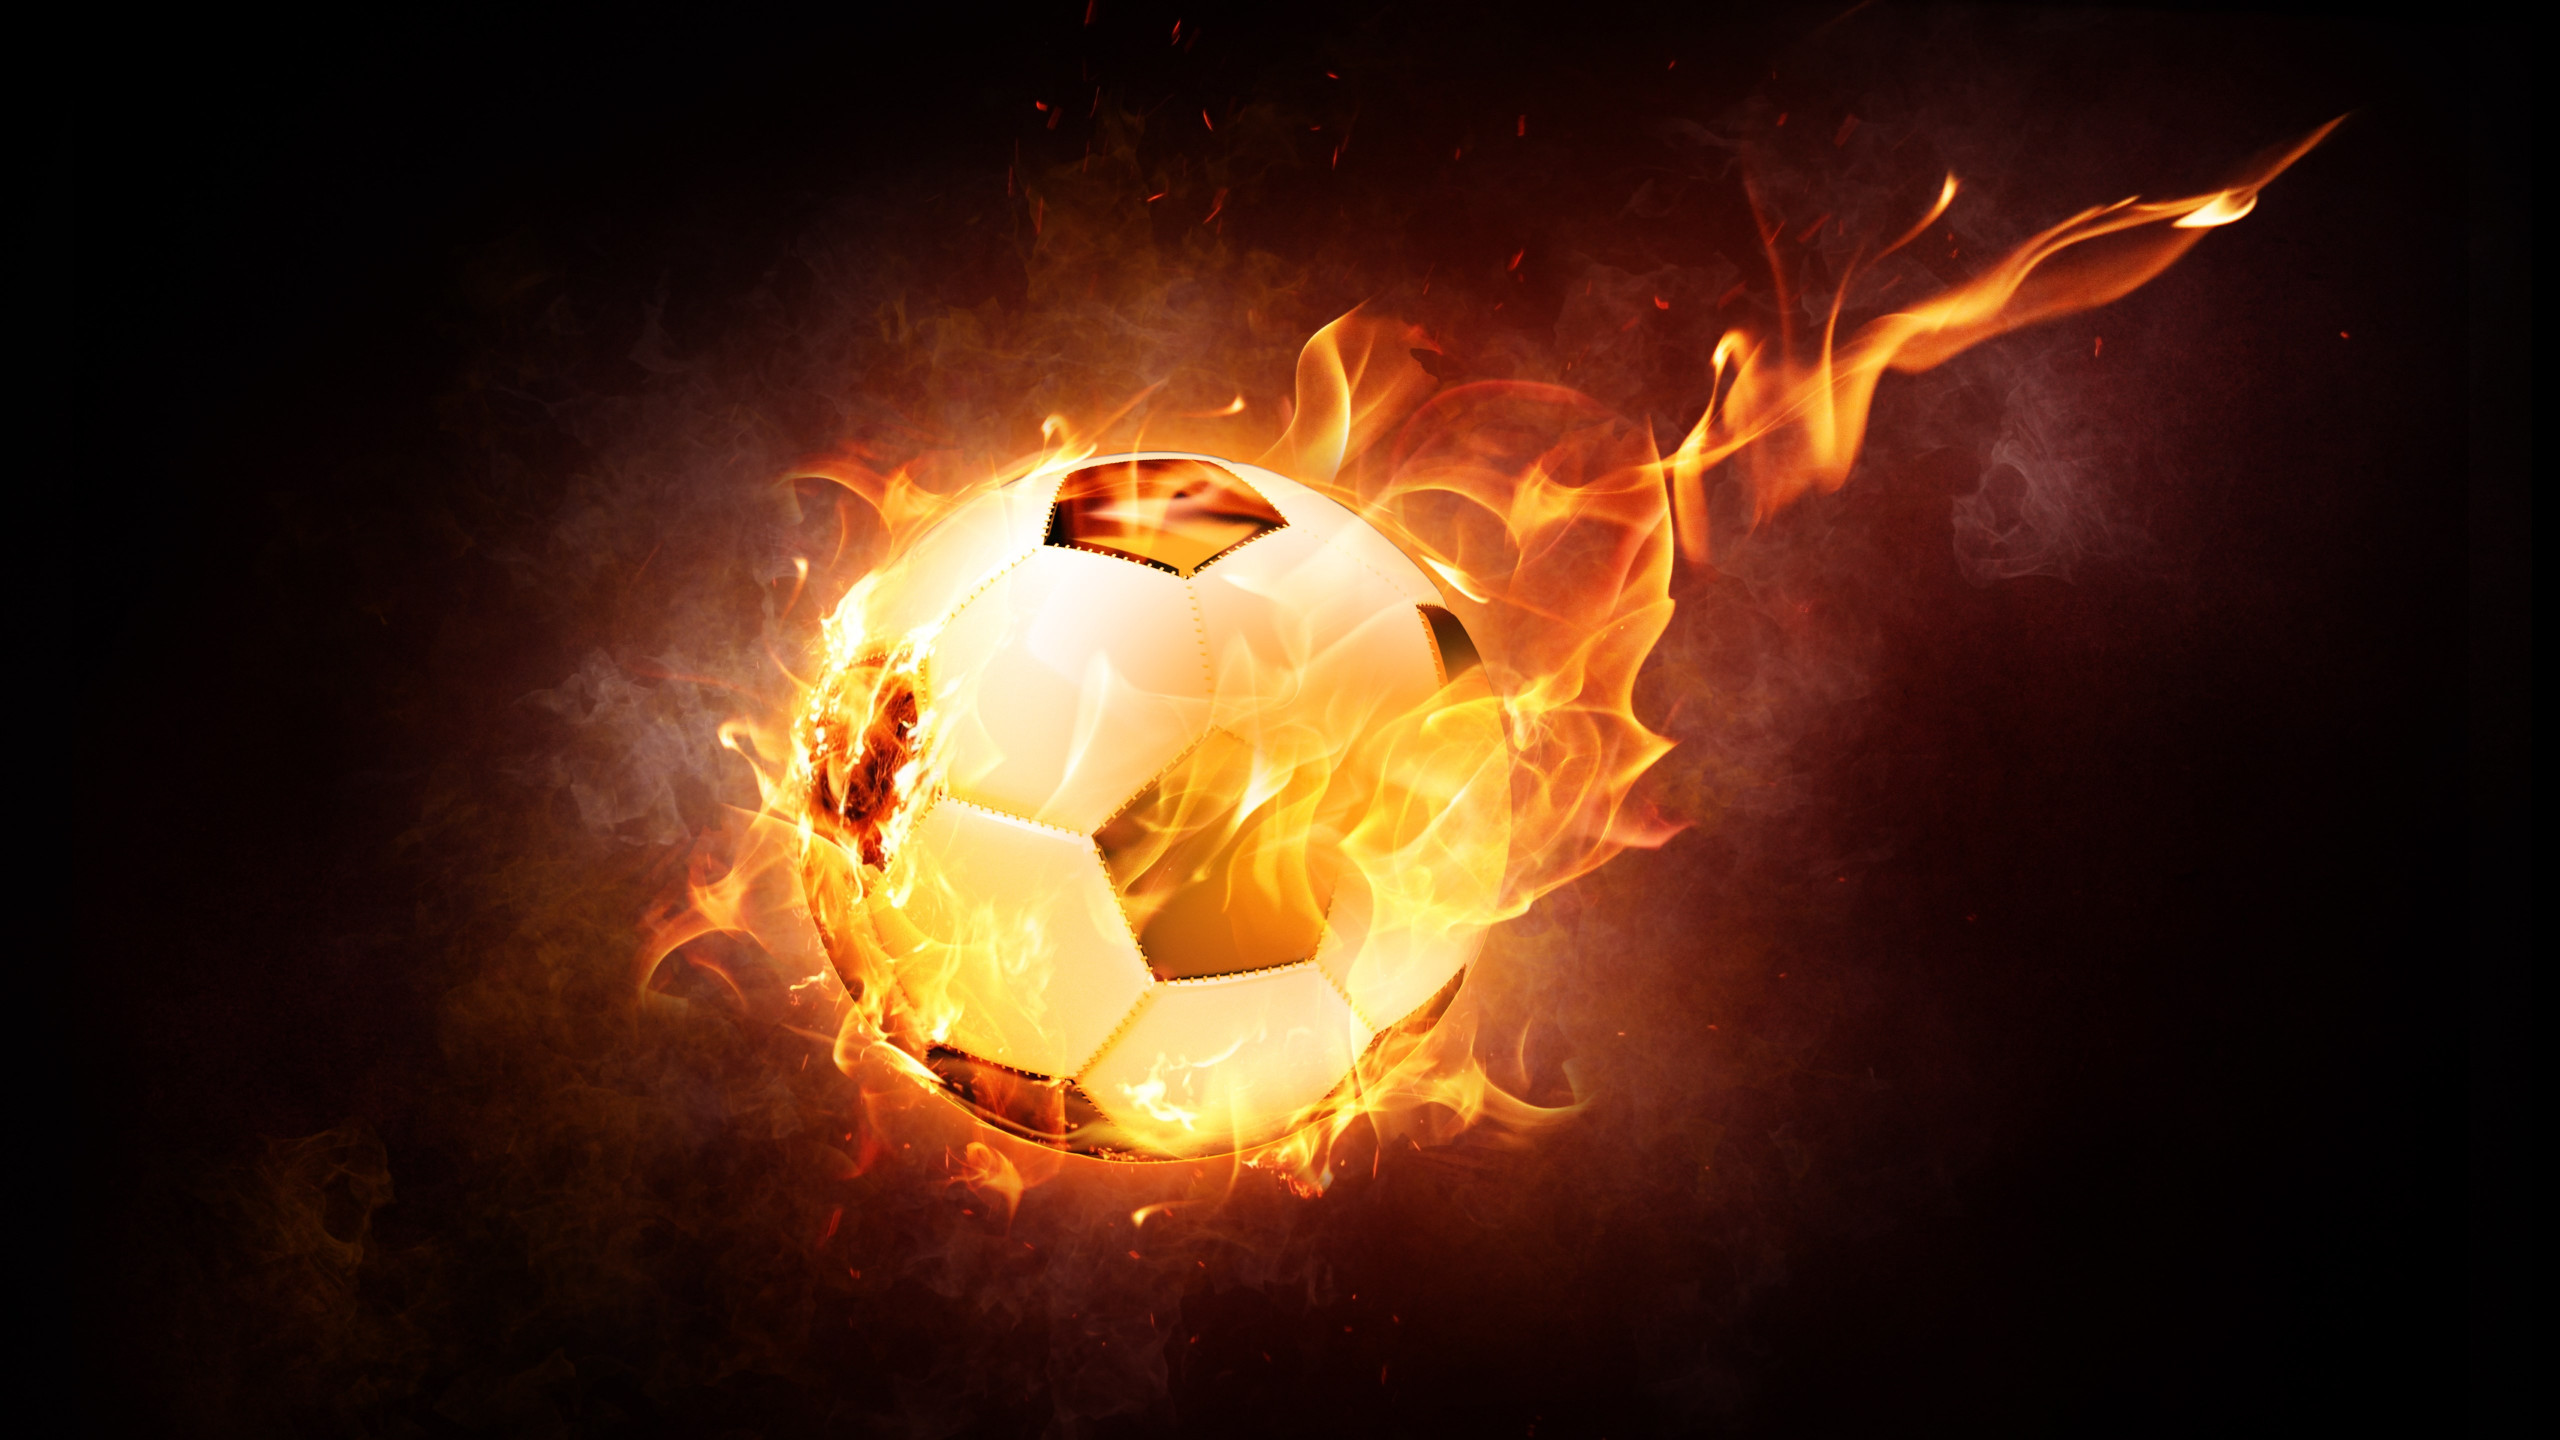 the football ball is on fire 2560x1440 wallpaper download link